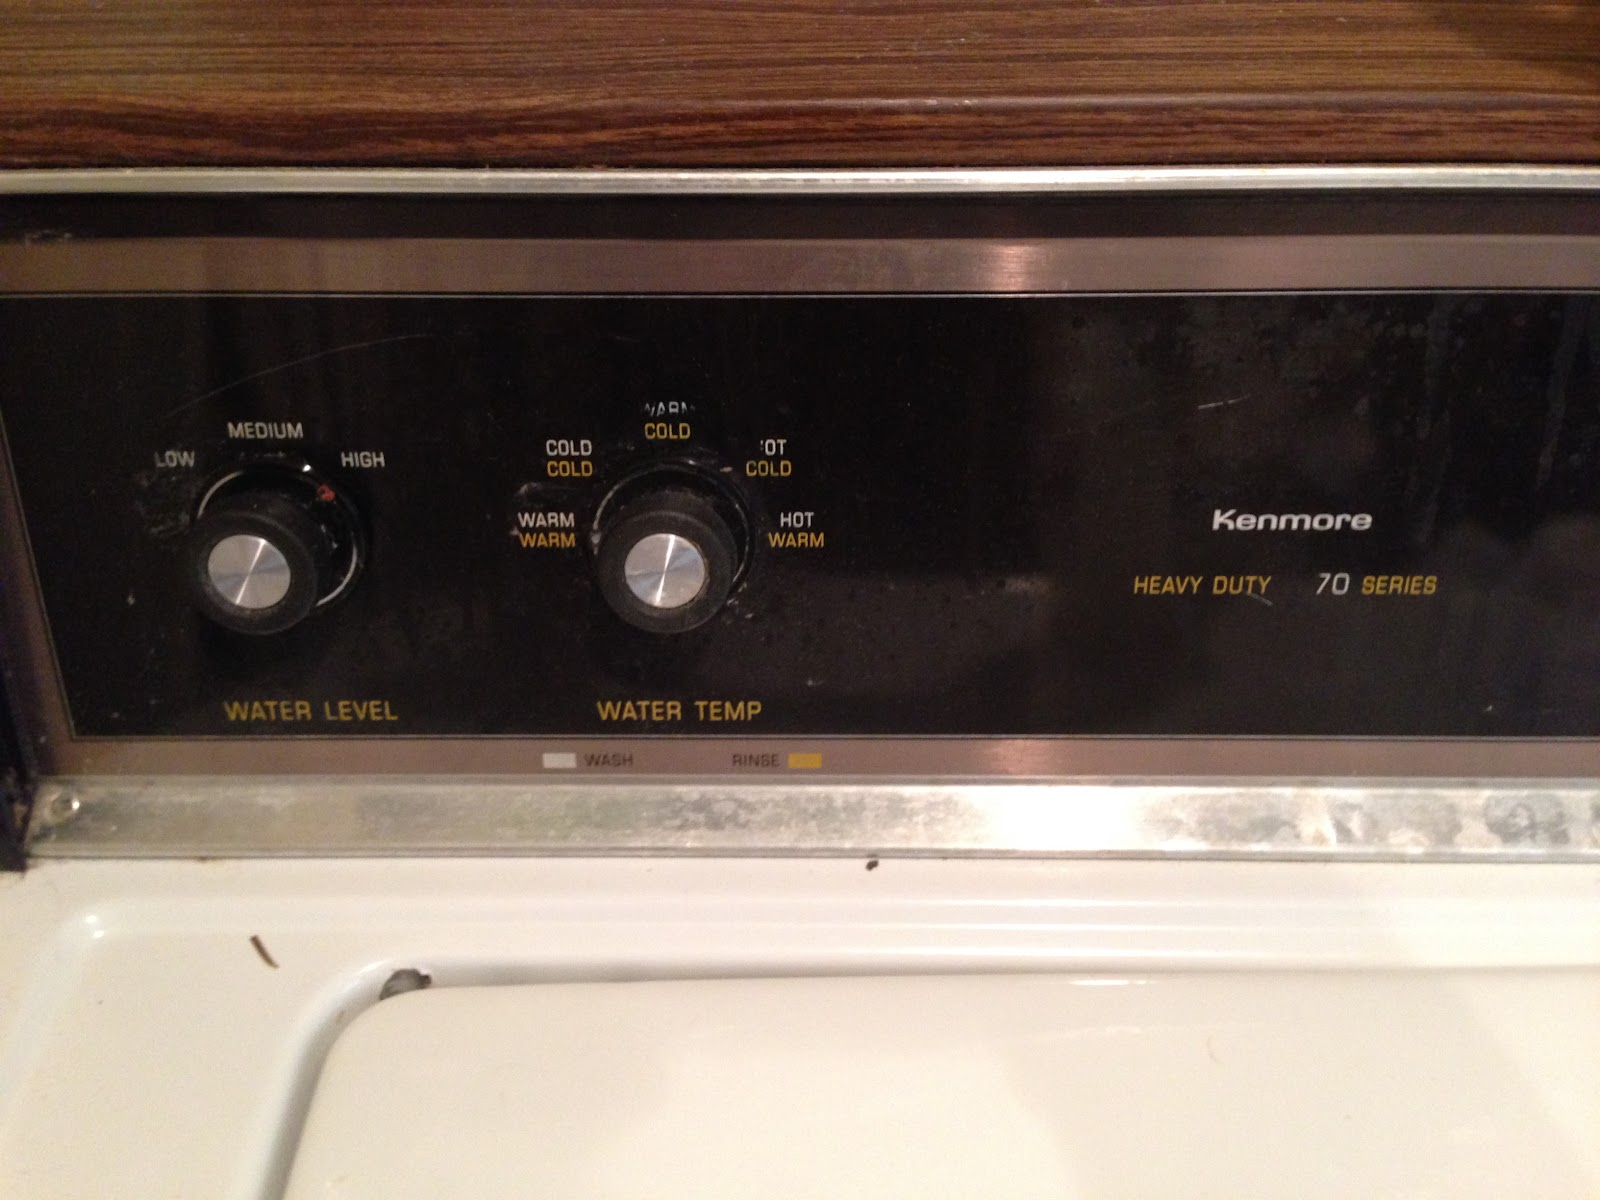 Kenmore 70 series washer agitator troubleshooting / ve ... on